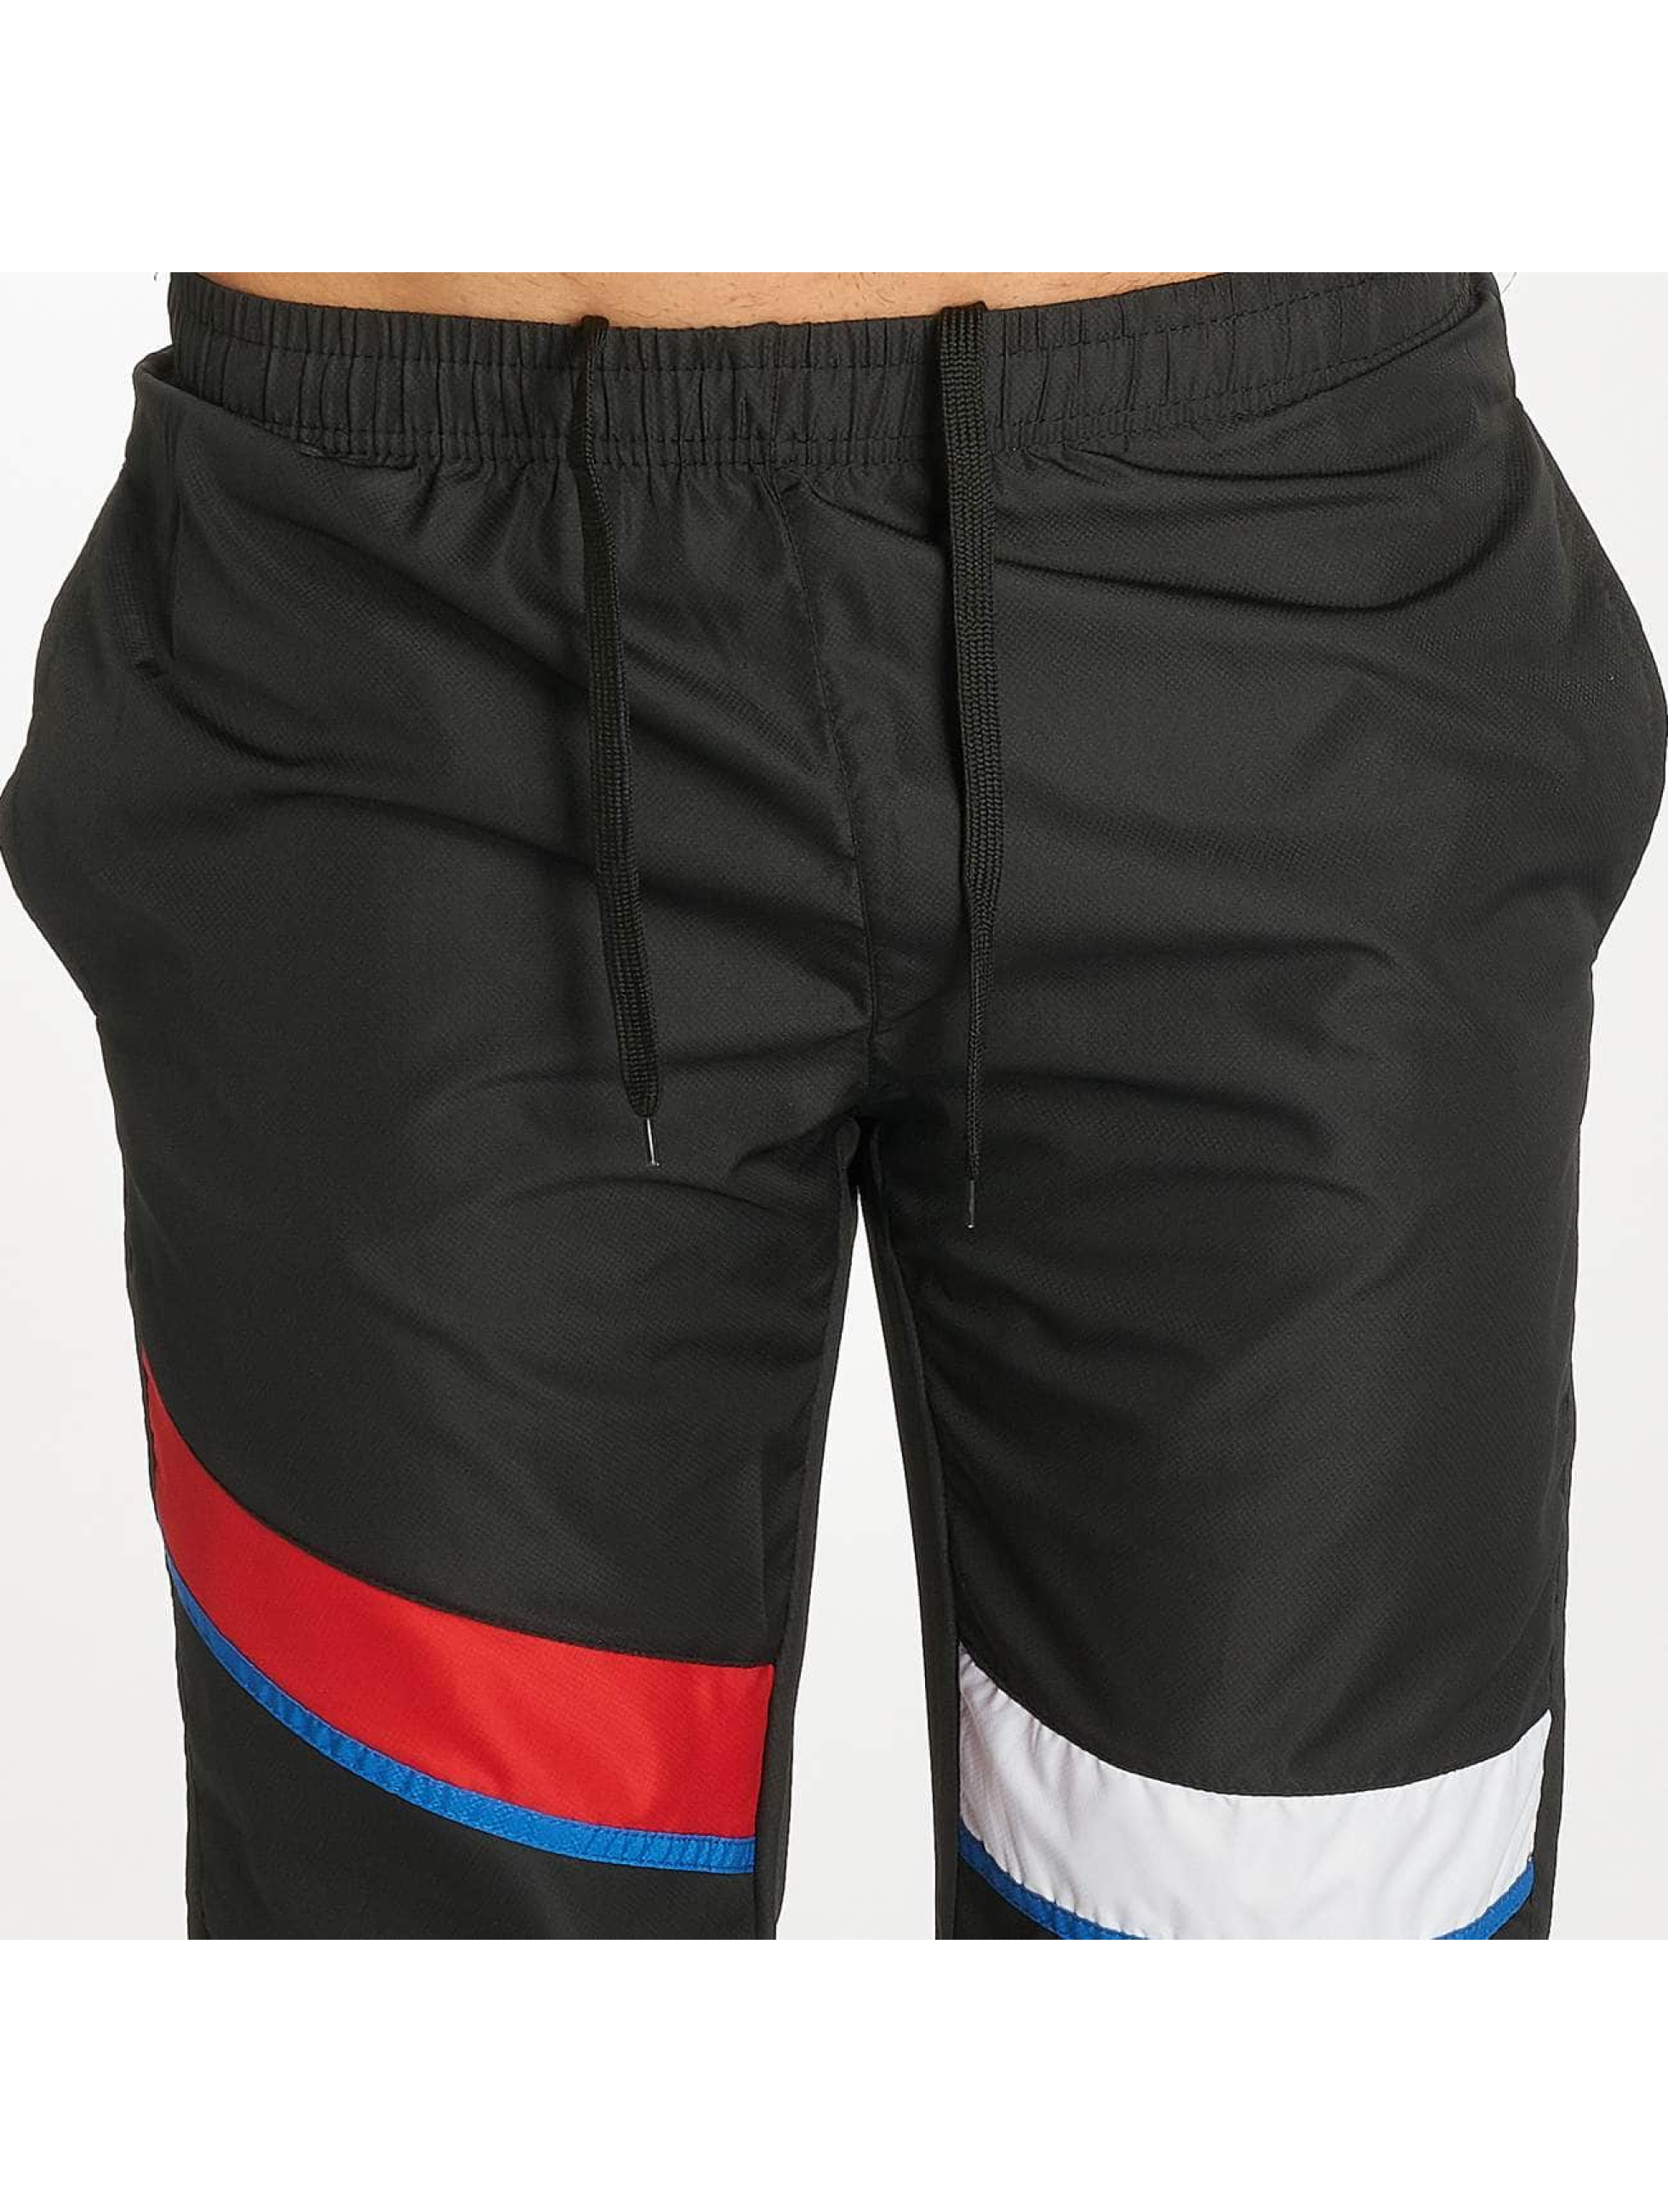 Zayne Paris Shorts Stripe svart